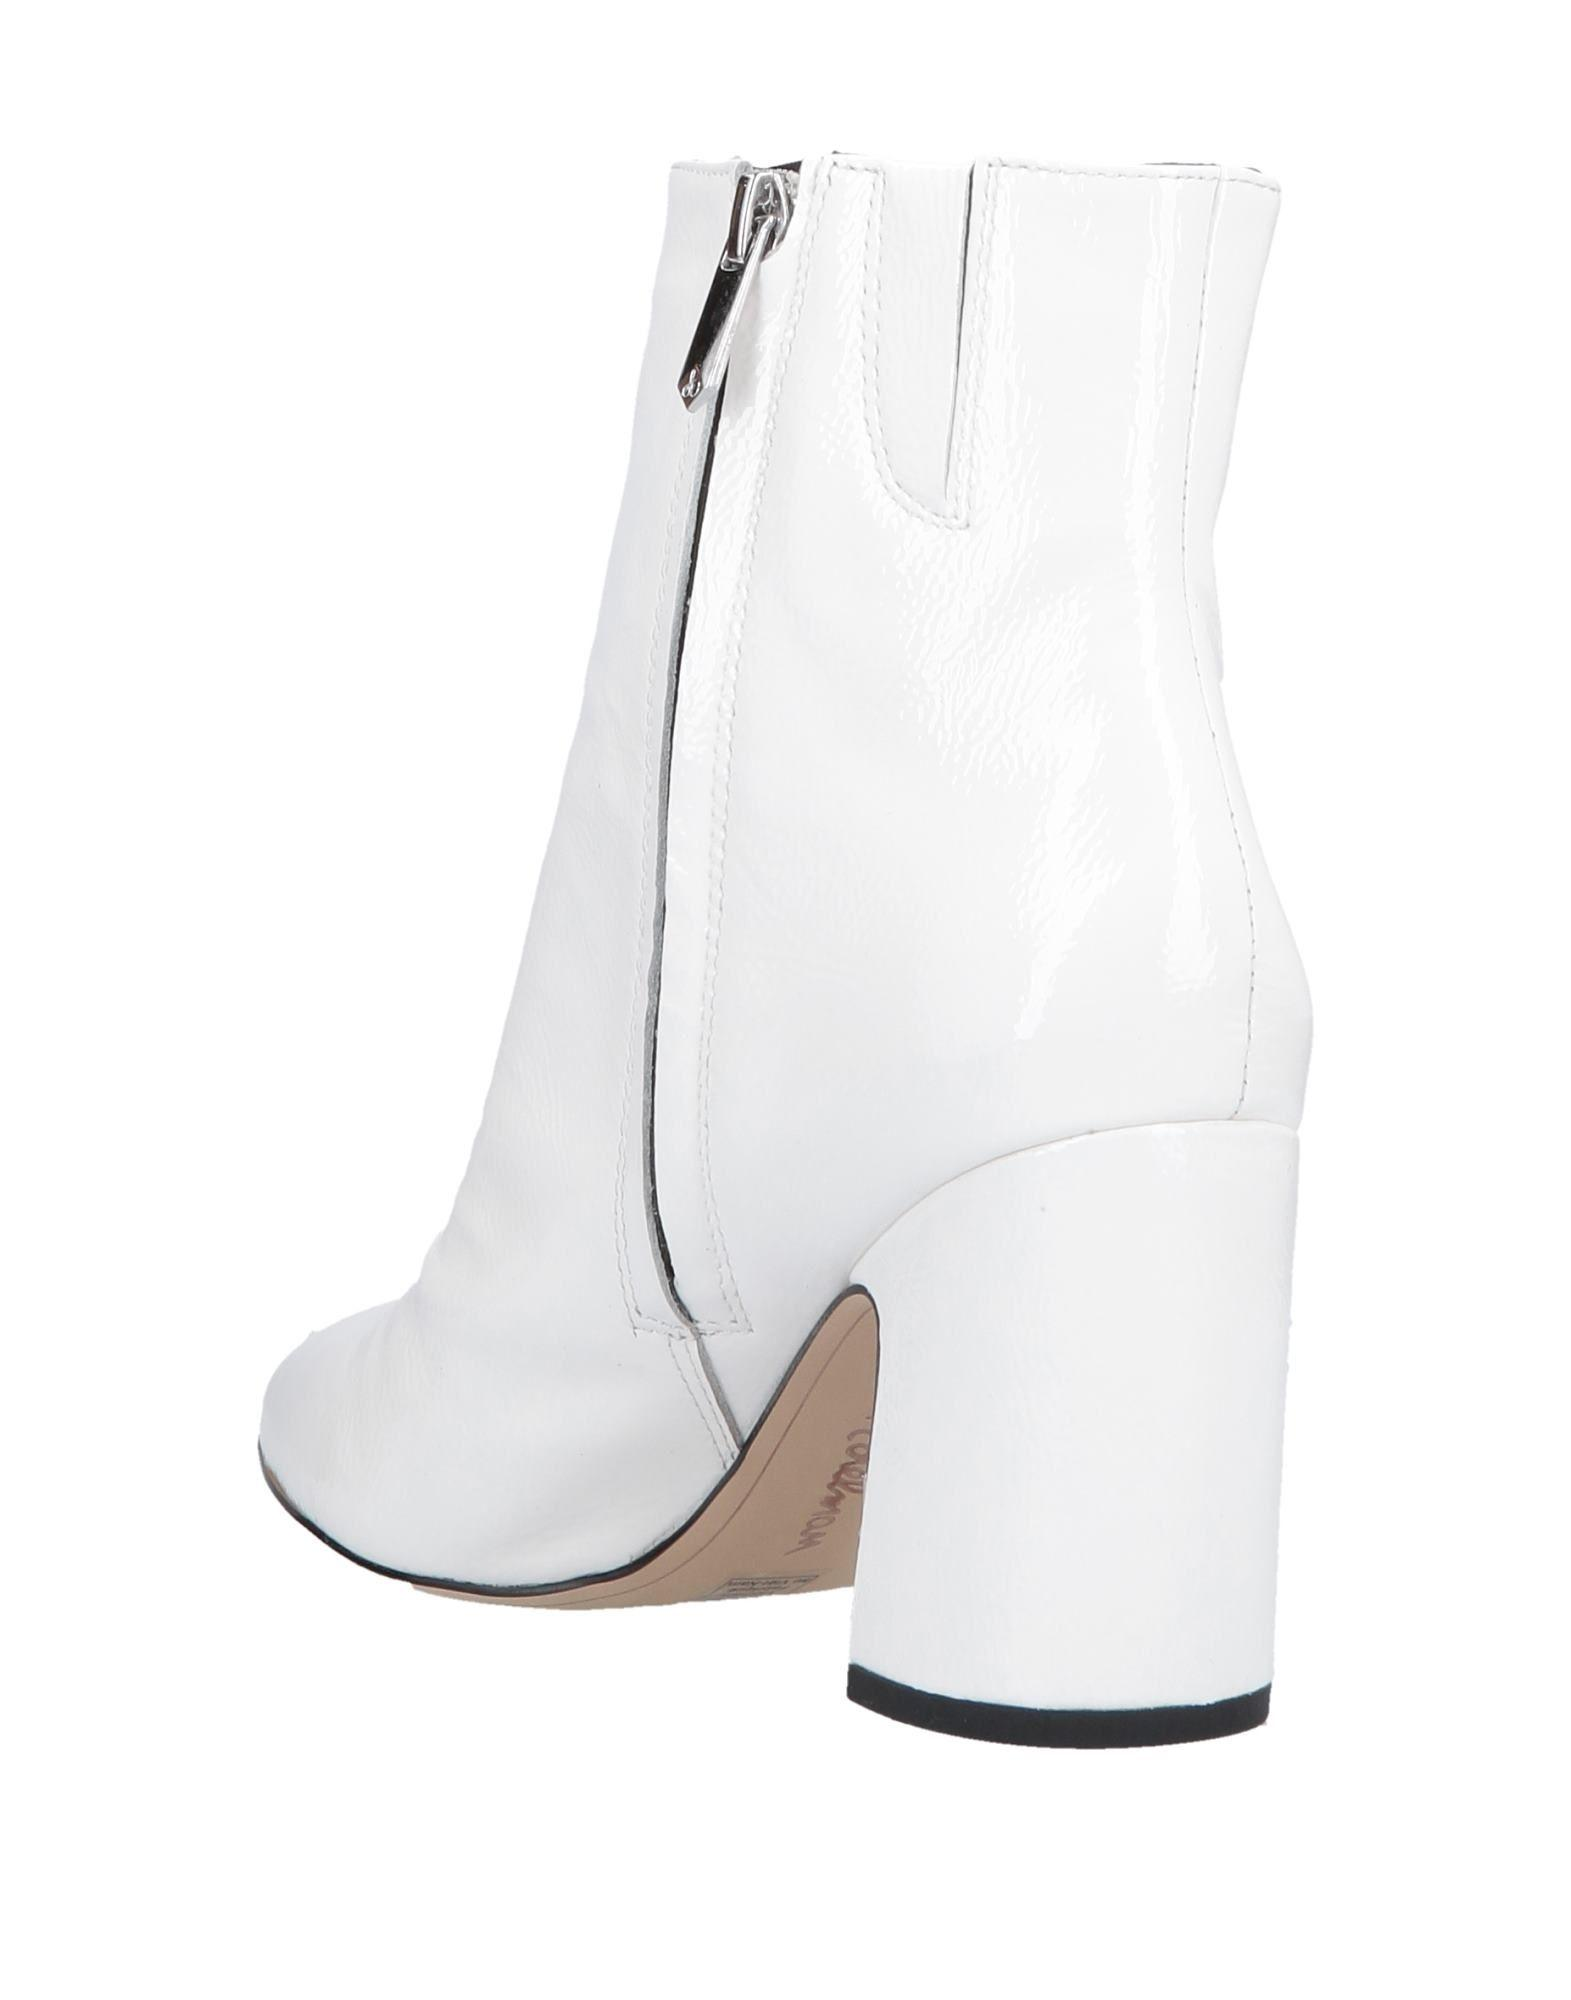 d33898688 Lyst - Sam Edelman Ankle Boots in White